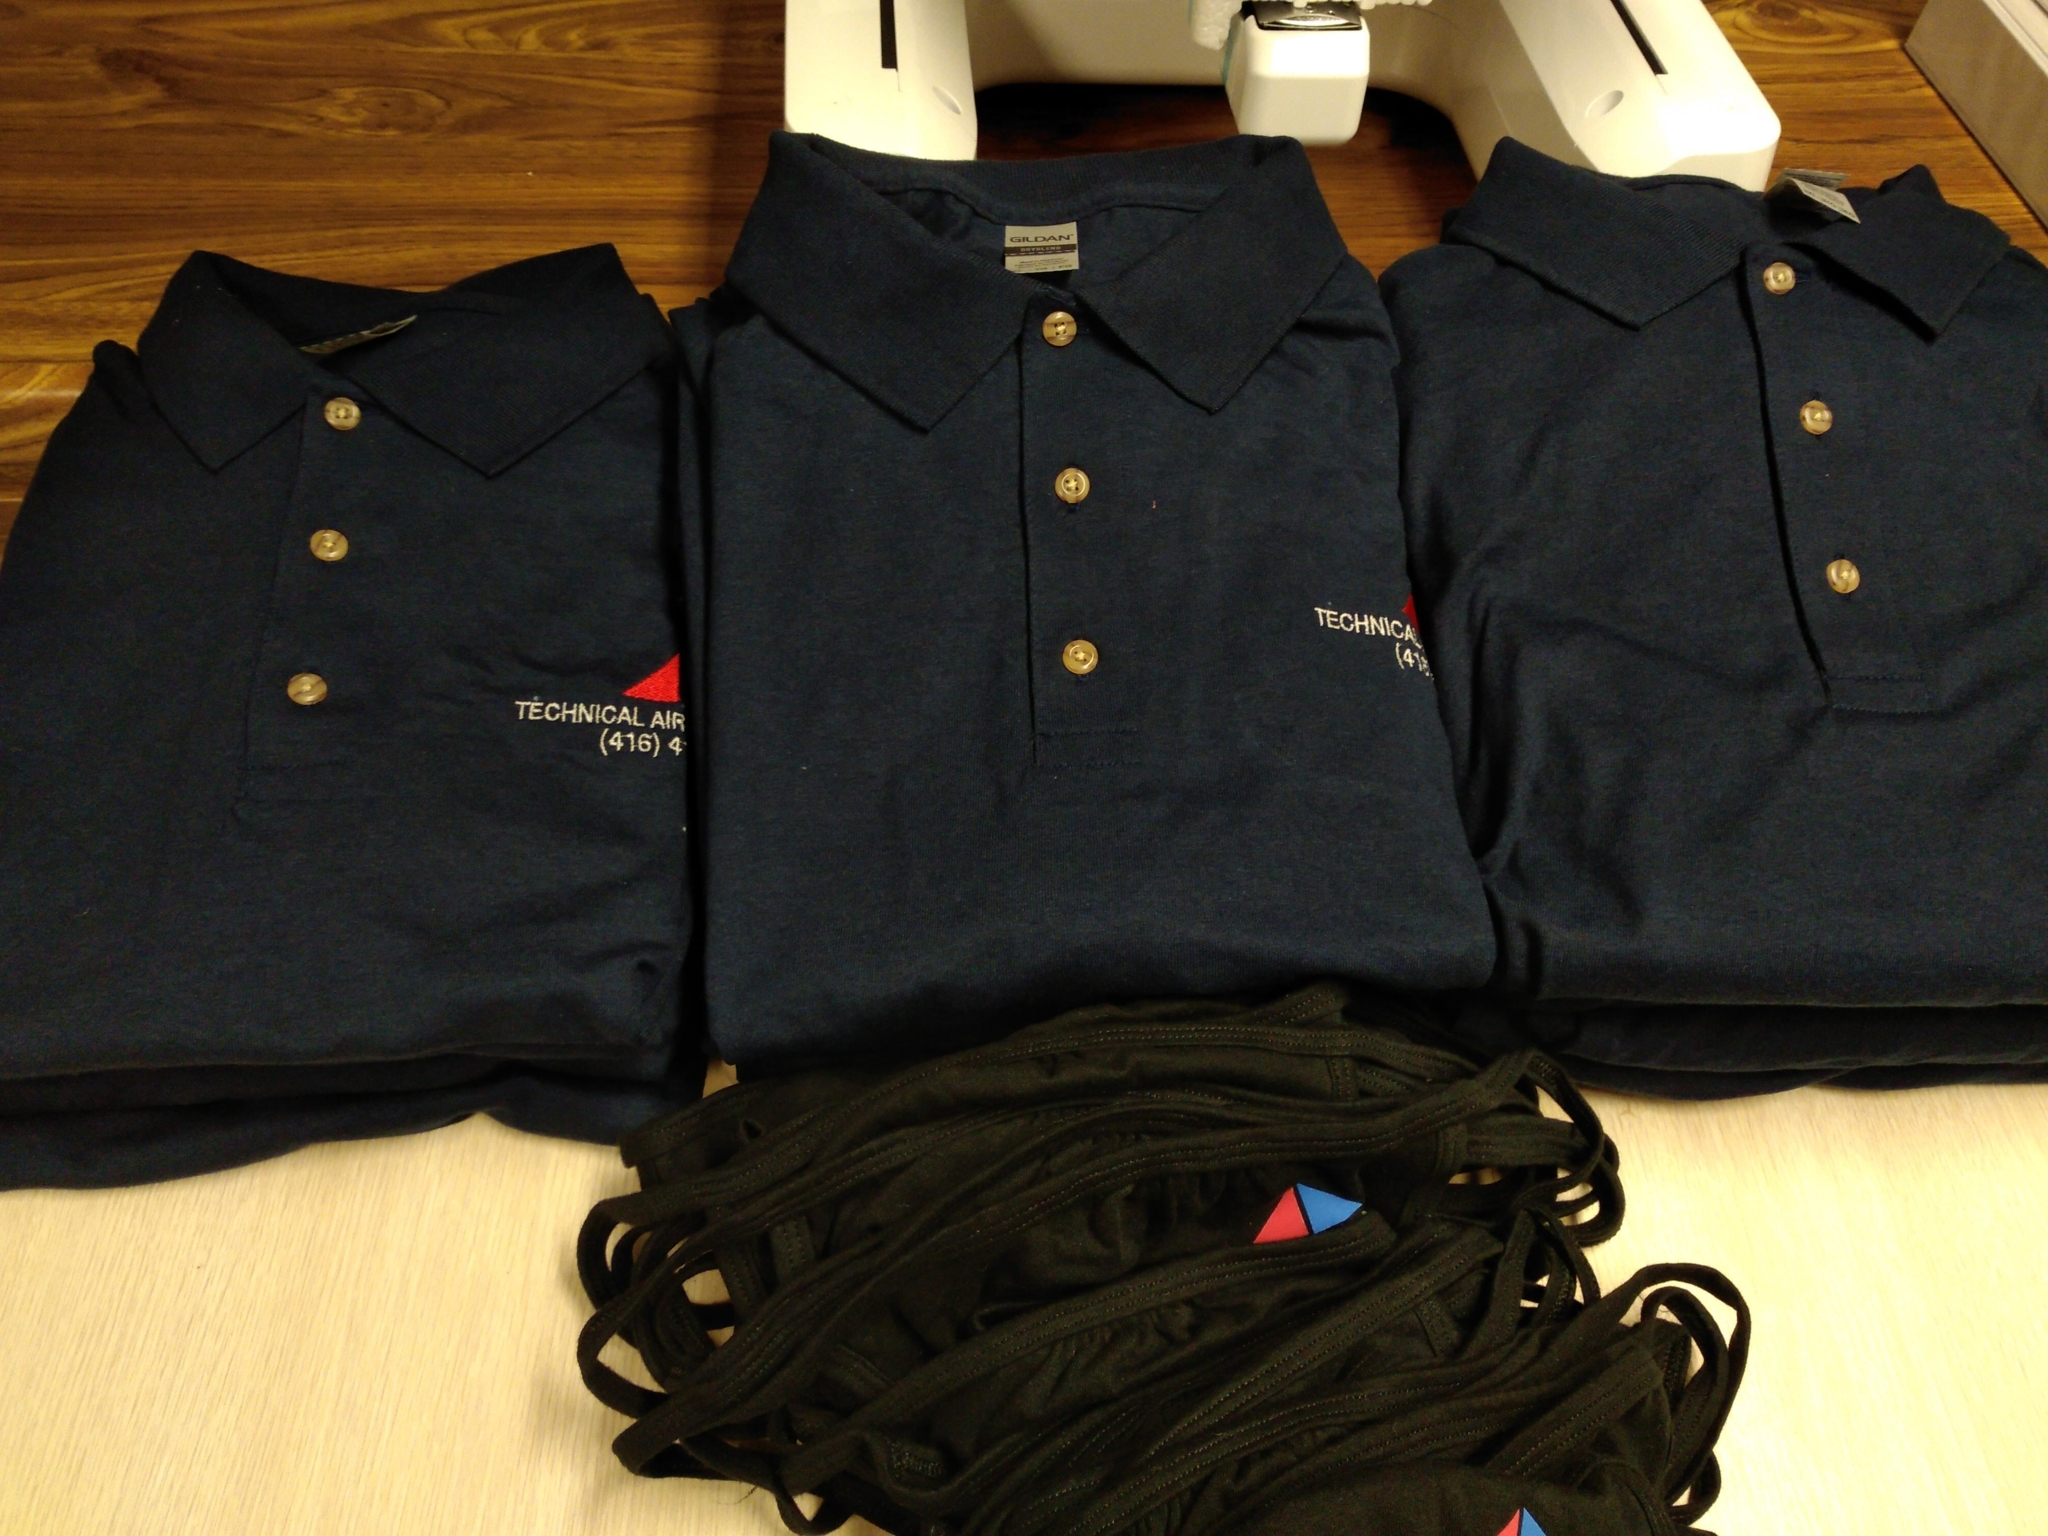 Just My Lids in Scarborough: We do custom embroidery on polo shirts for small or large businesses. We accept small or large orders.